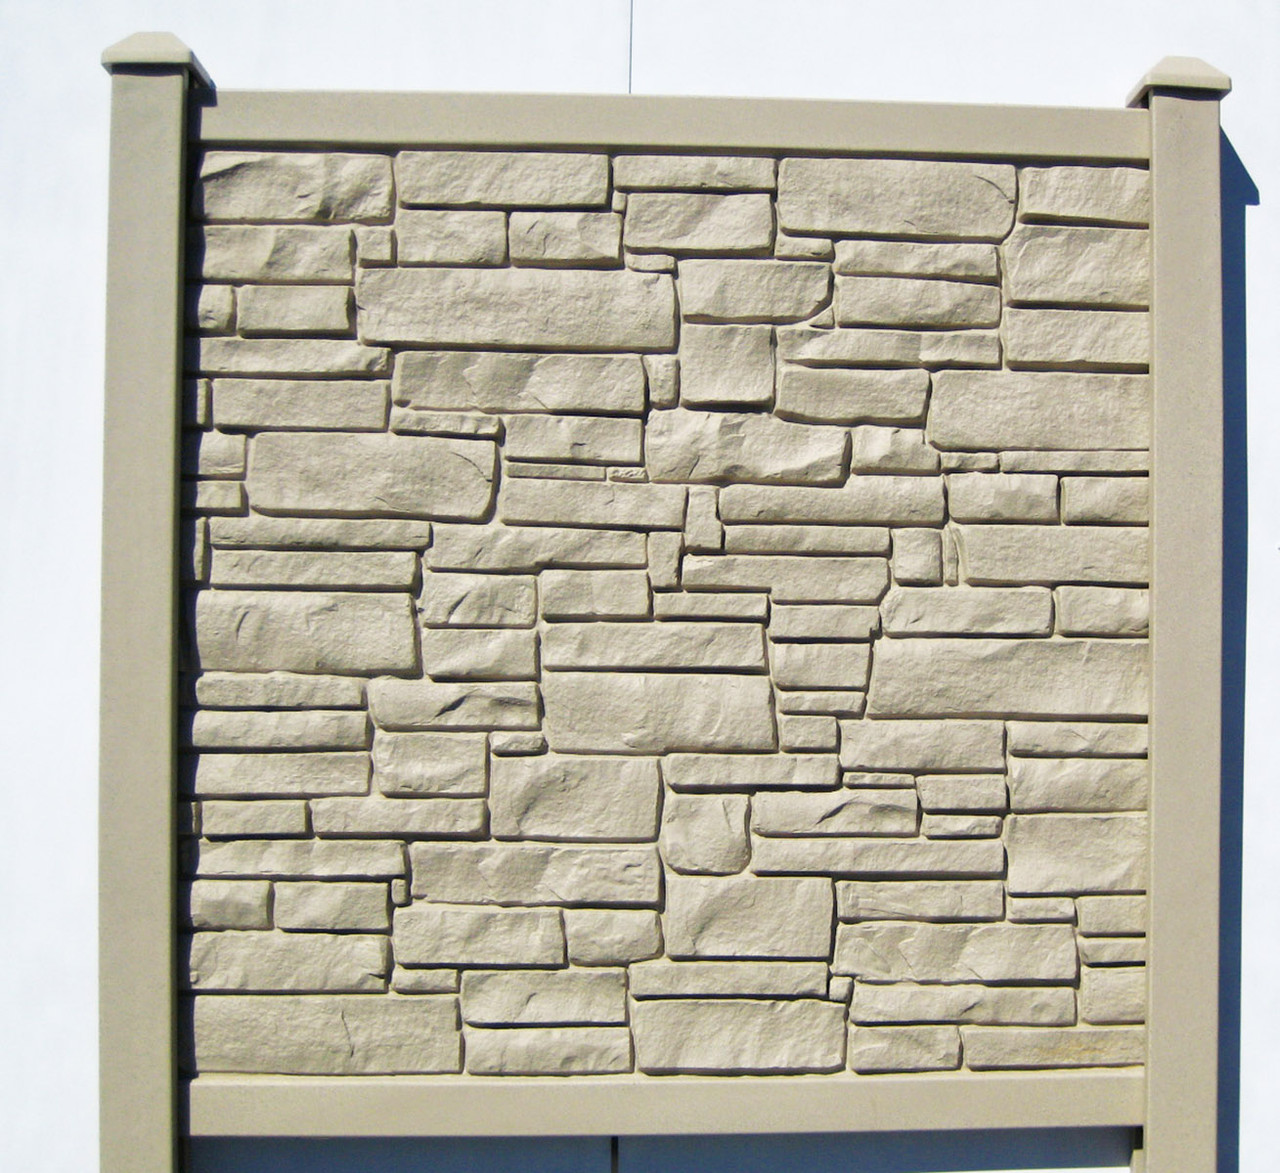 Bufftech Allegheny Molded Fence Panel - Beige Granite (Posts are sold separately)